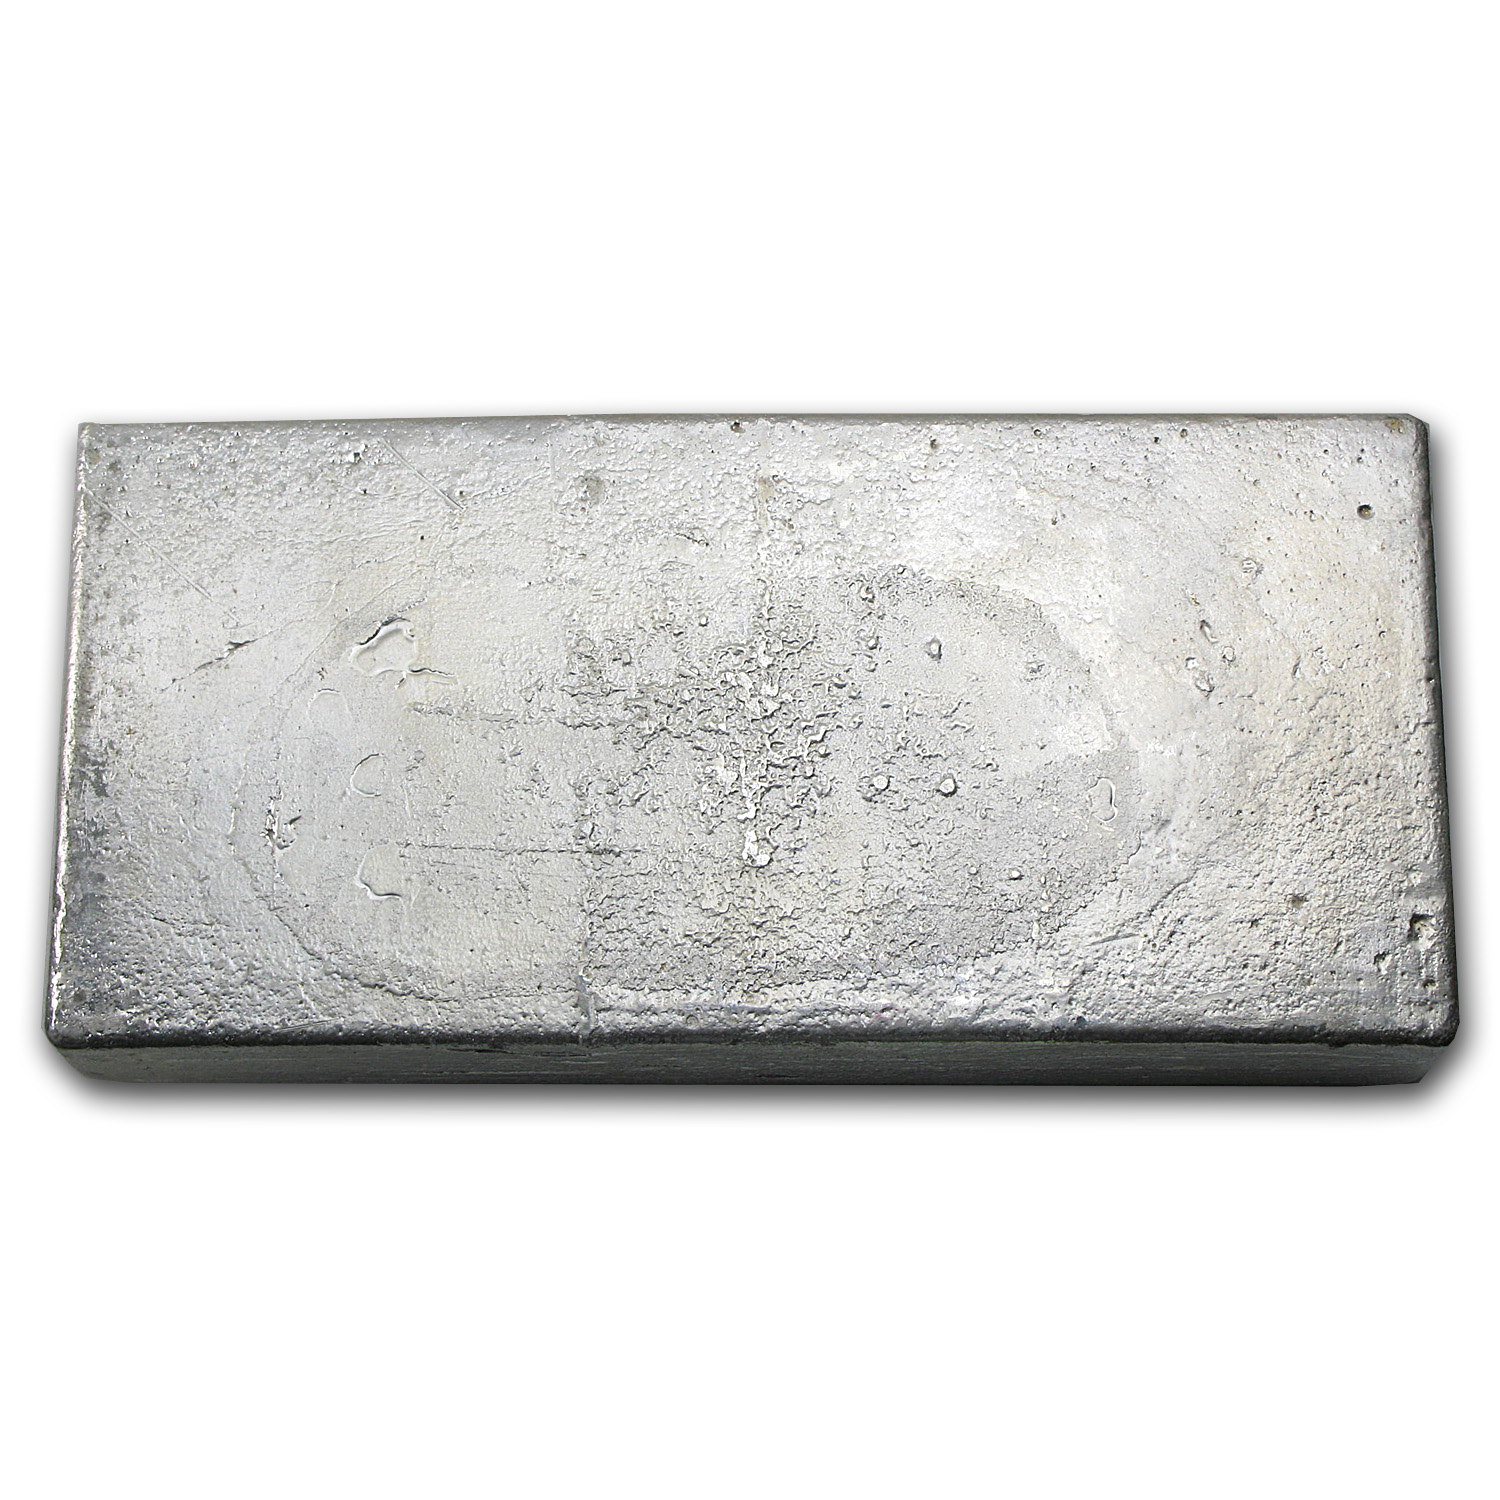 100 oz Silver Bar - Engelhard (First Generation, Poured)